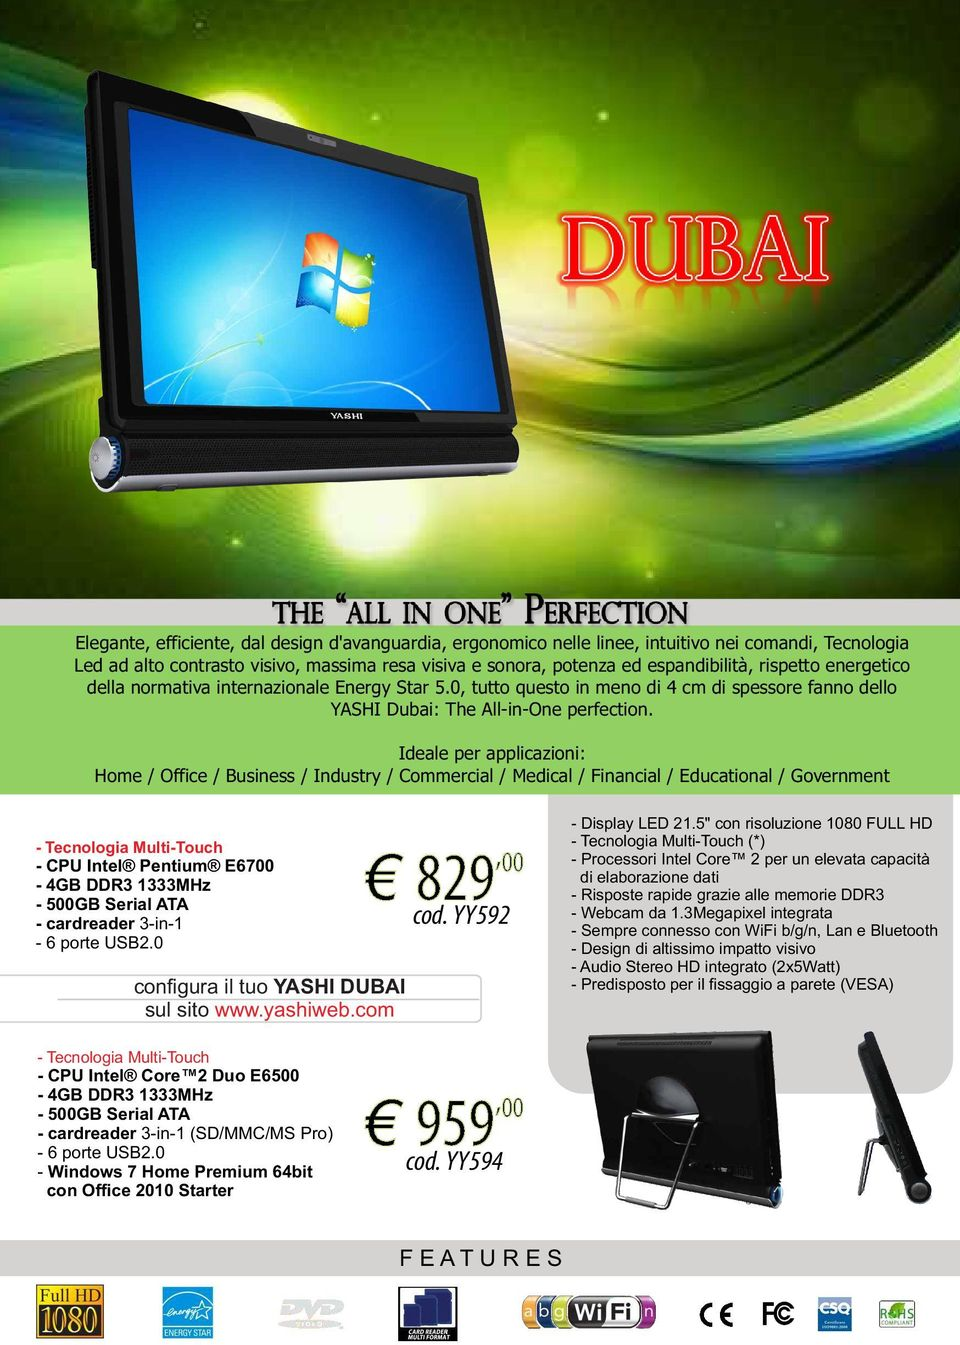 Ideale per applicazioni: Home / Office / Business / Industry / Commercial / Medical / Financial / Educational / Government - Tecnologia Multi-Touch - CPU Intel Pentium E6700-4GB DDR3 1333MHz - 500GB